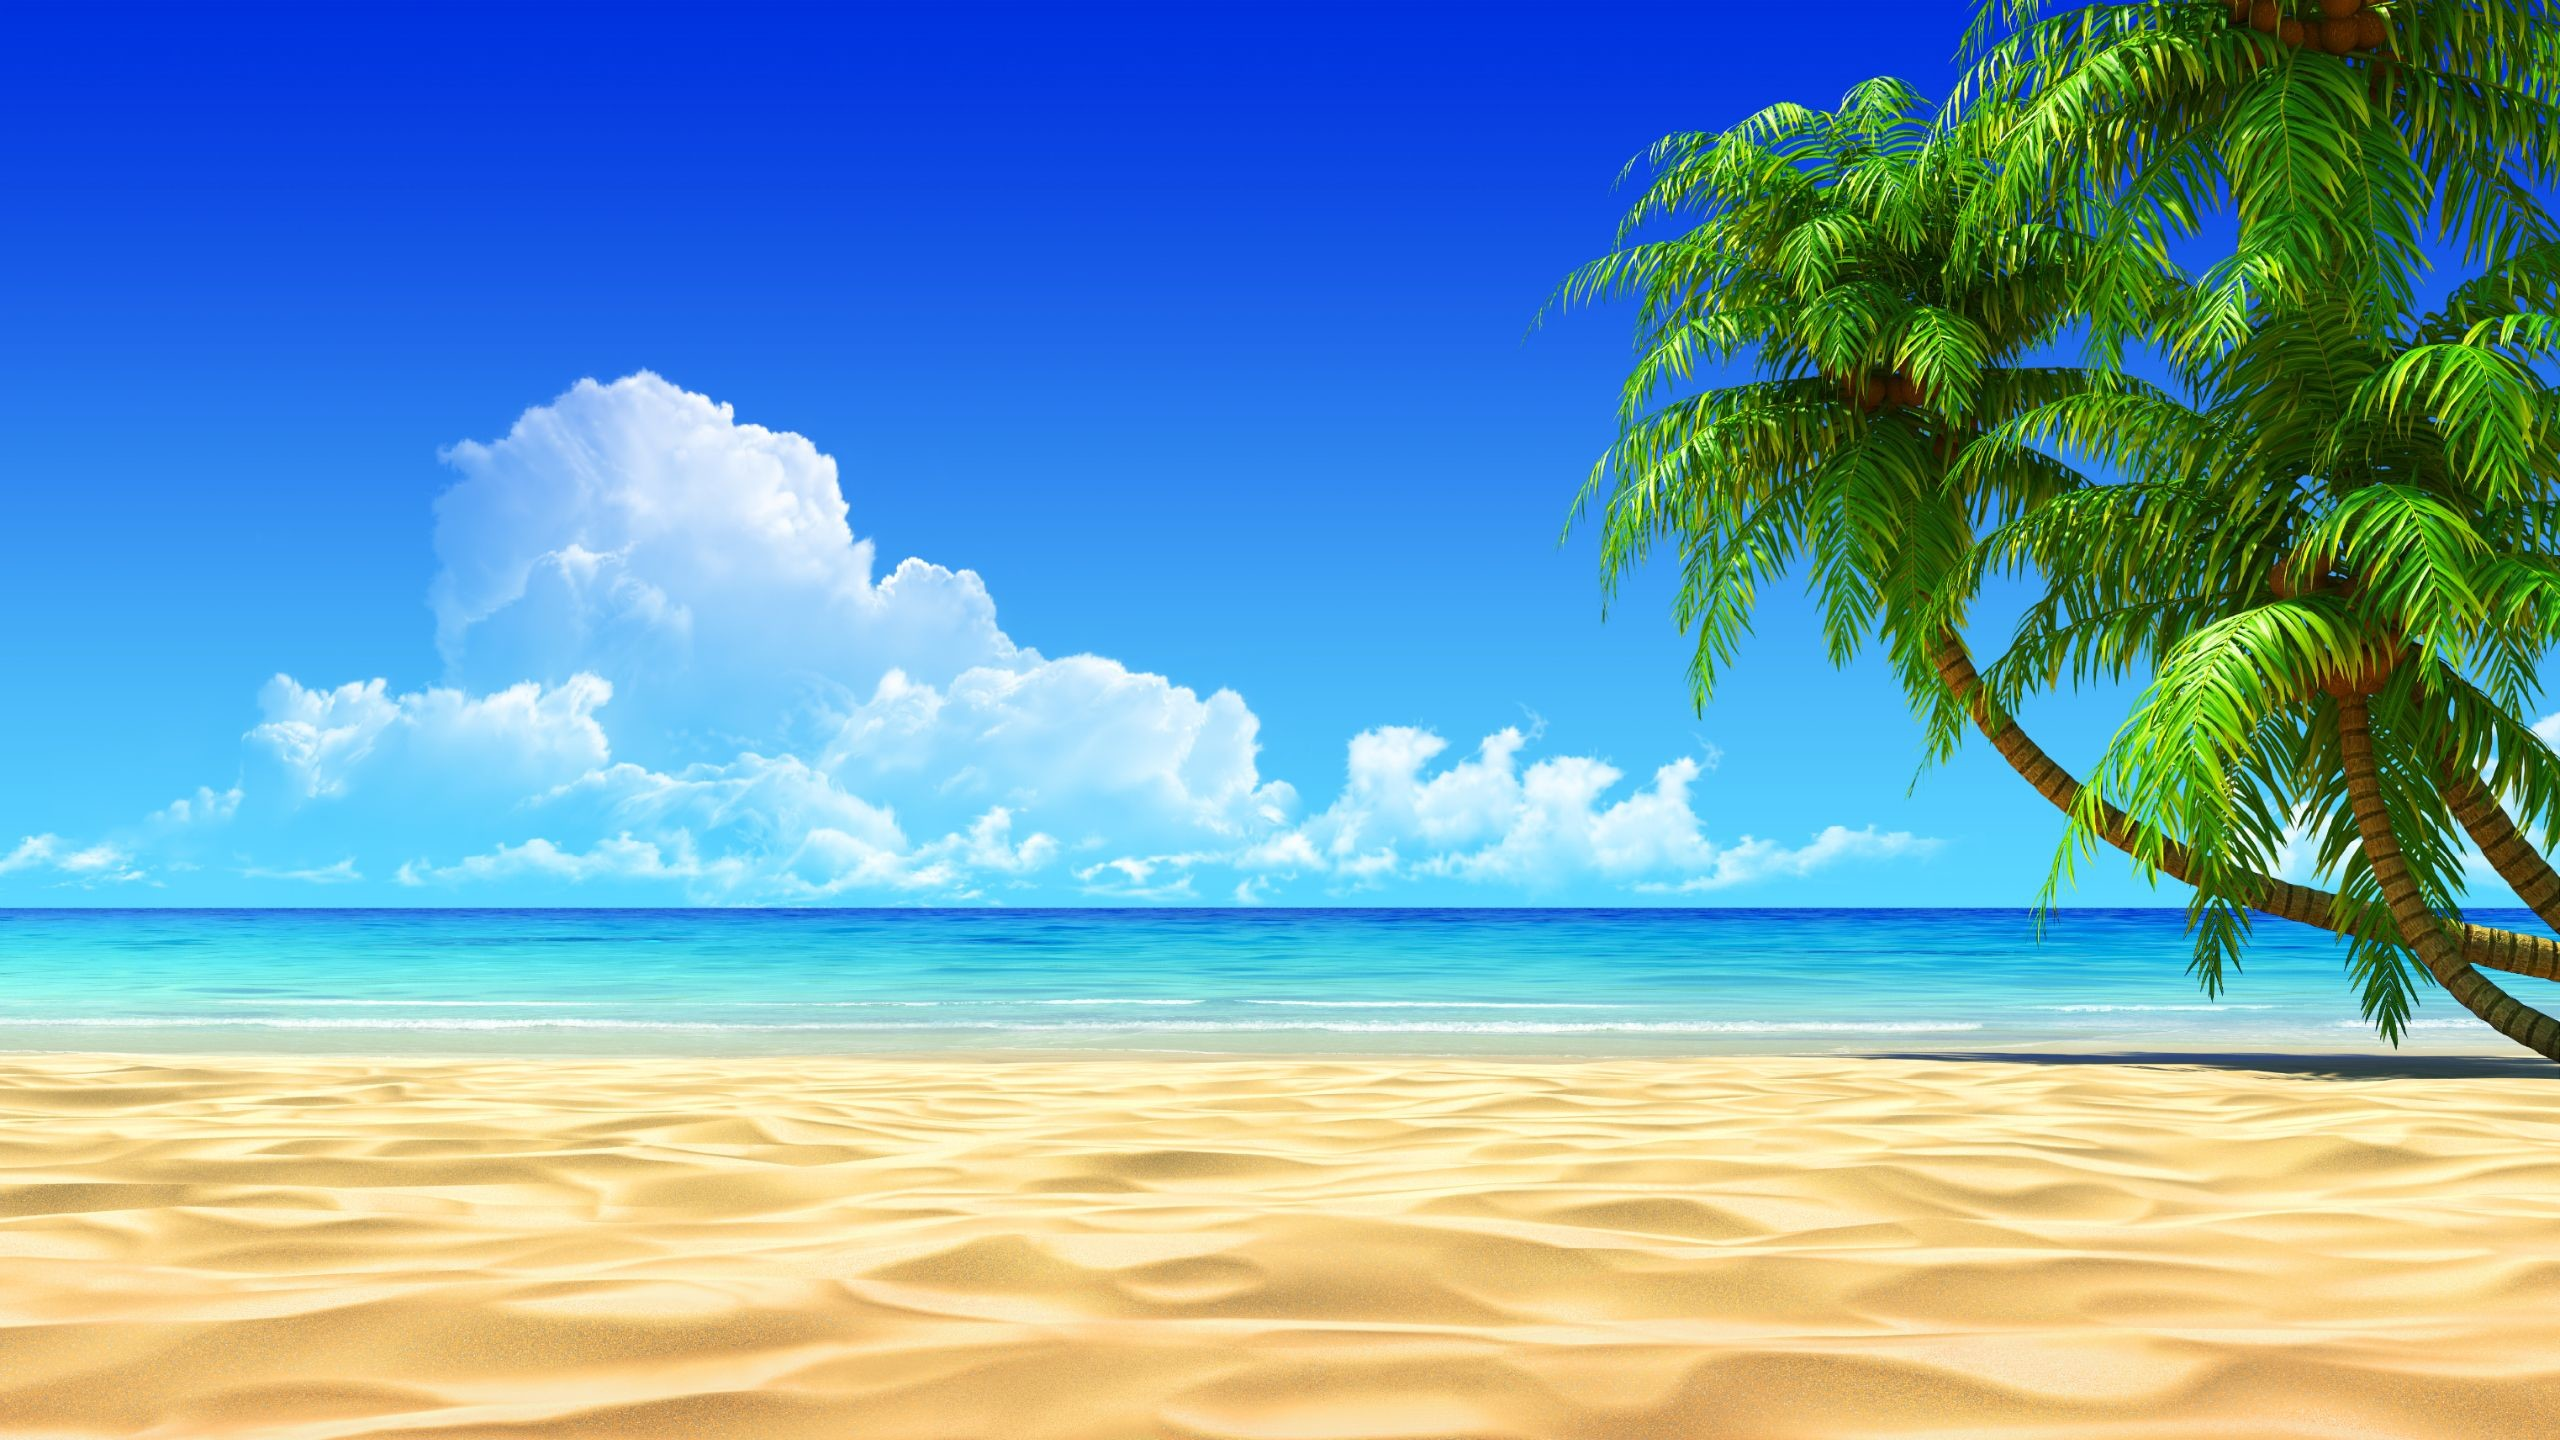 High Resolution Beach Scene Wallpaper 71 Images